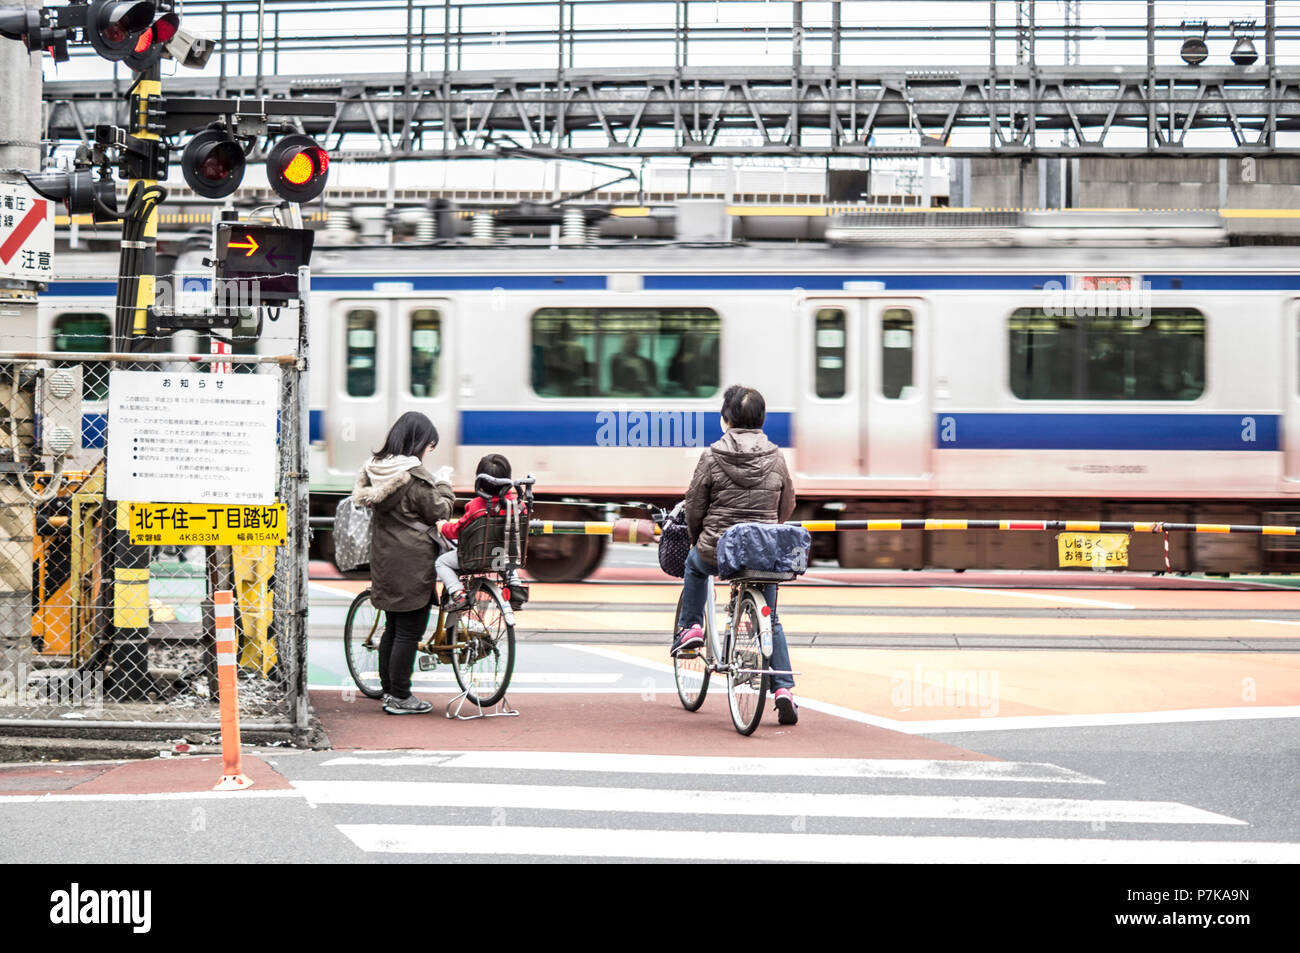 Locals in front of a railroad crossing in Tokyo - Stock Image